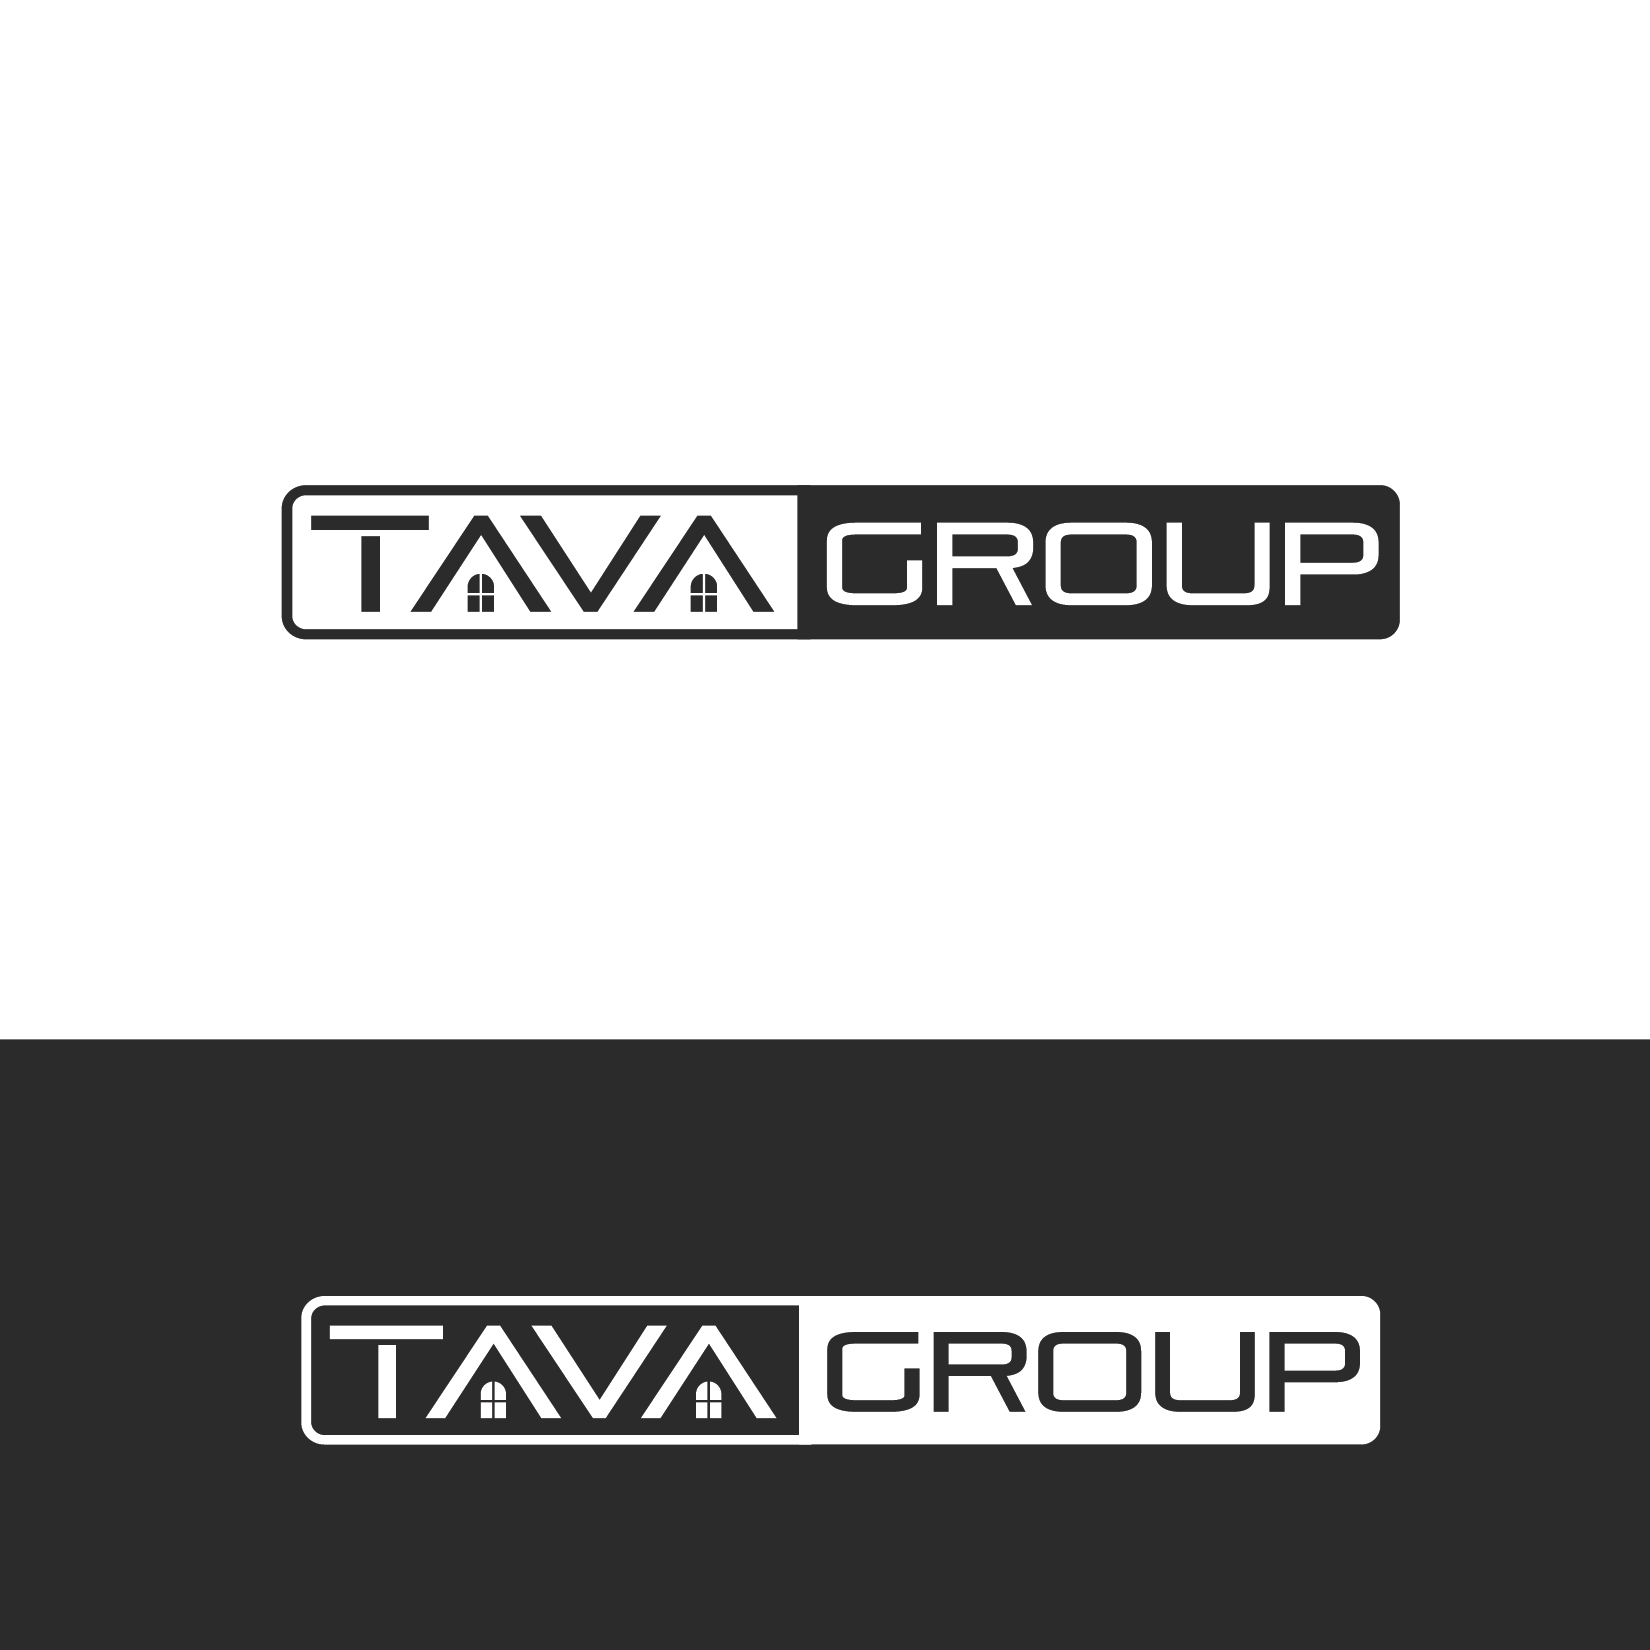 Logo Design by Private User - Entry No. 198 in the Logo Design Contest Creative Logo Design for Tava Group.